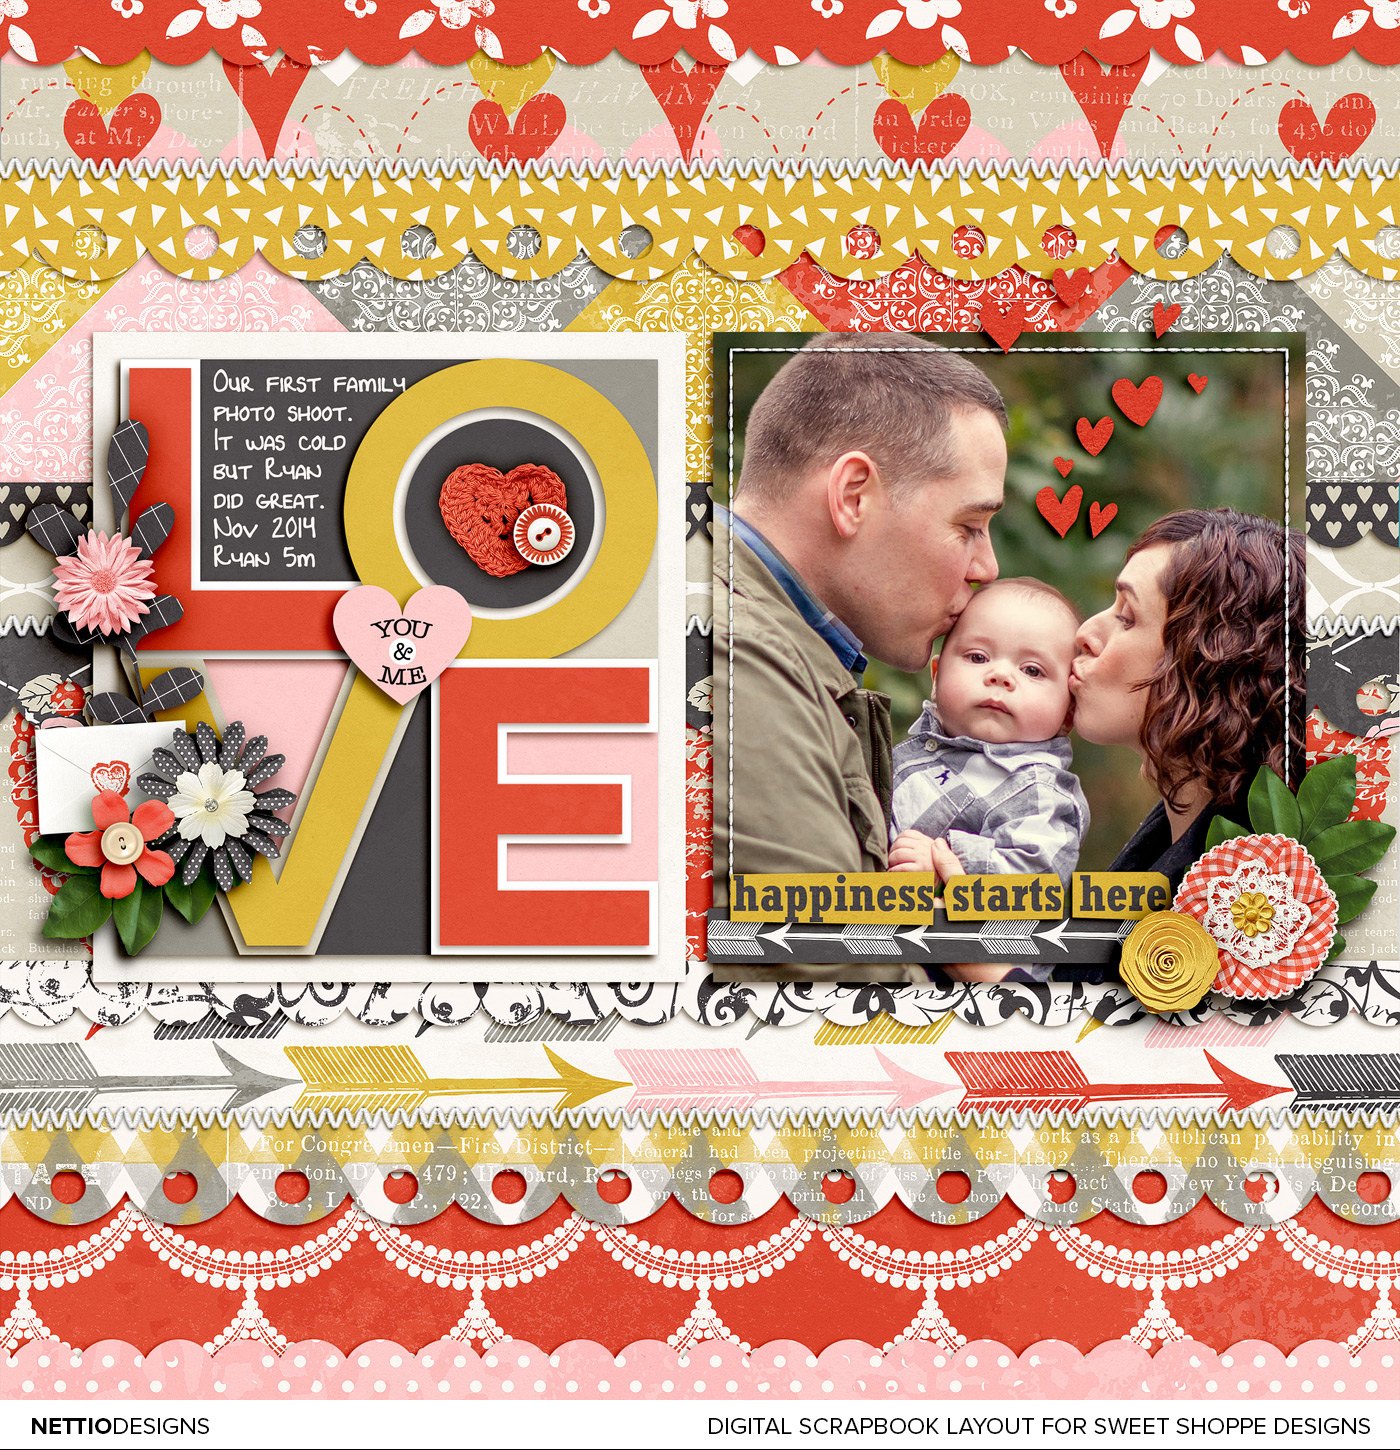 Digital Scrapbooking Layout by NettioDesigns | Scrapbook Saturday 02 Scaling Down a Template